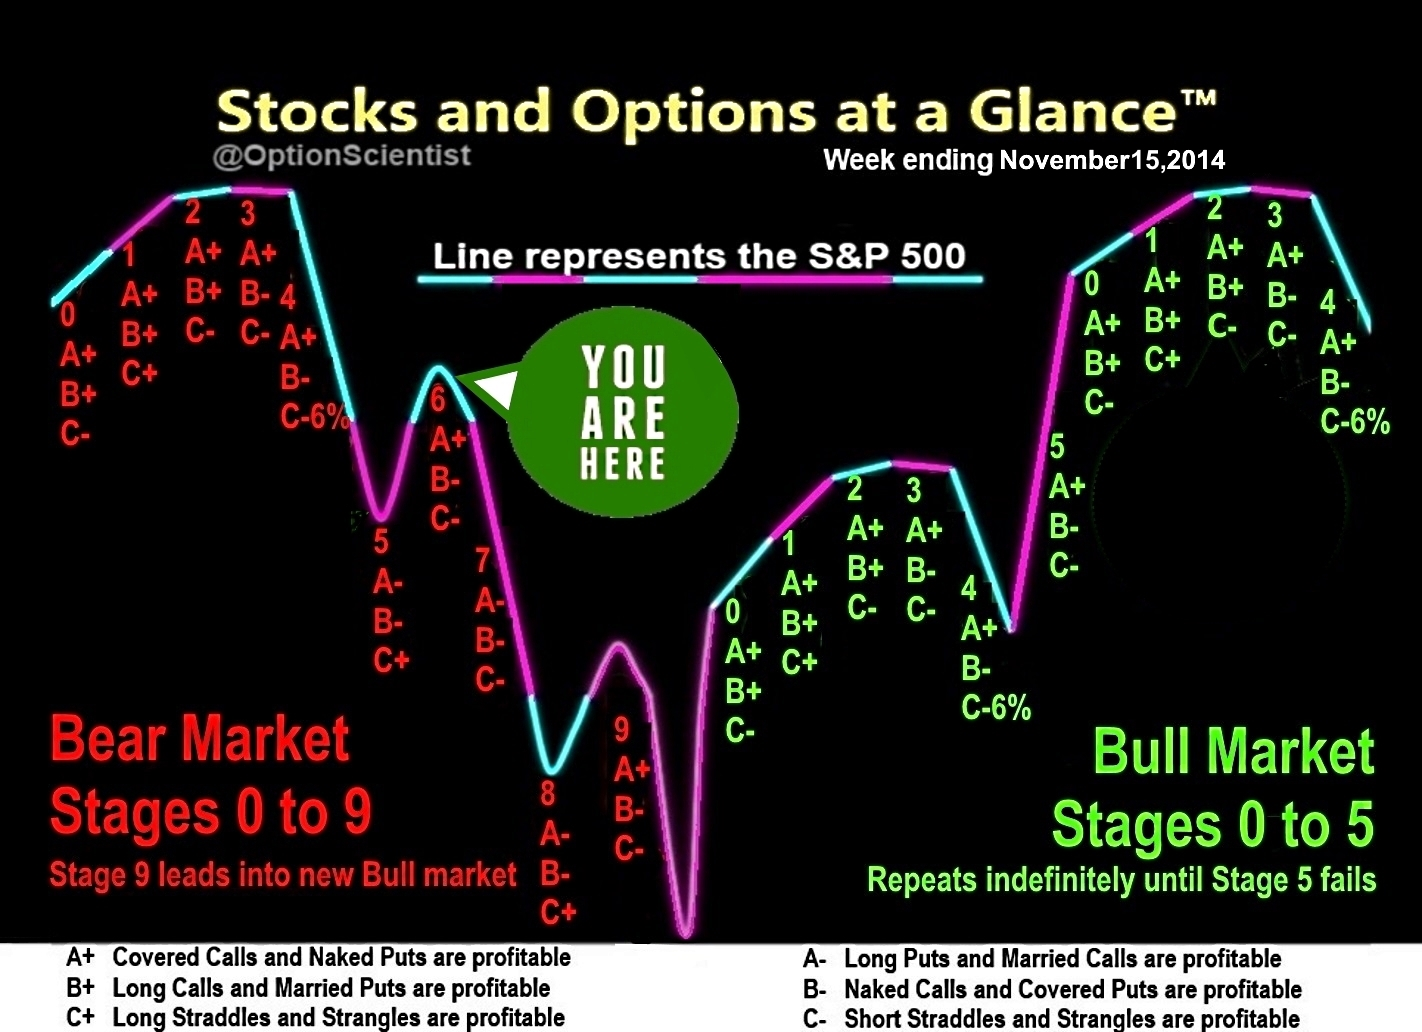 Stocks and Options at a Glance 11-15-14